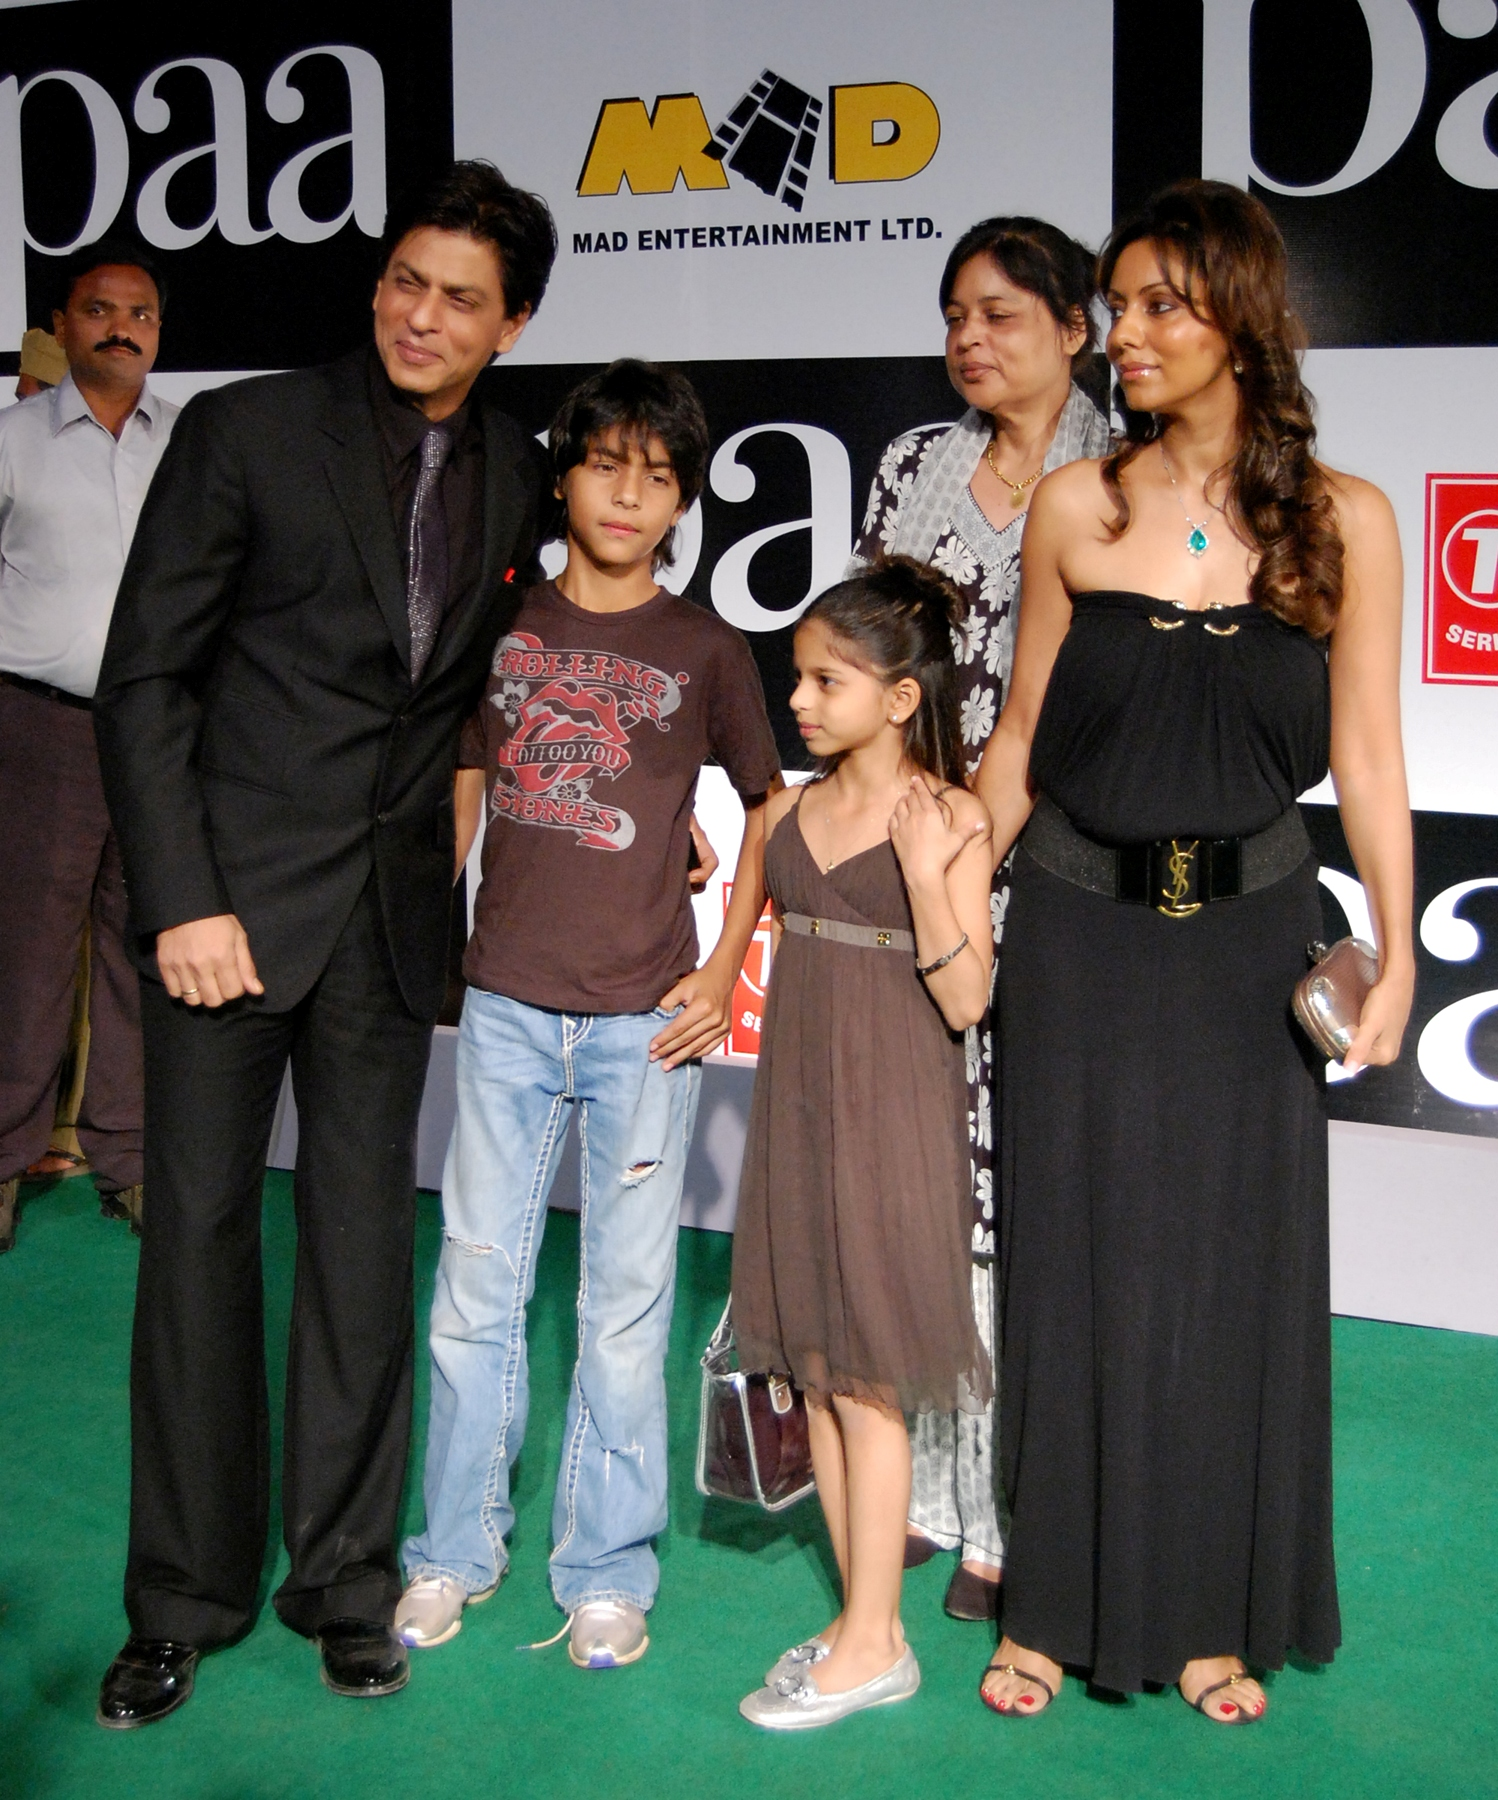 Shahrukh Khan and Gauri Khan at the Premiere of the film Paa